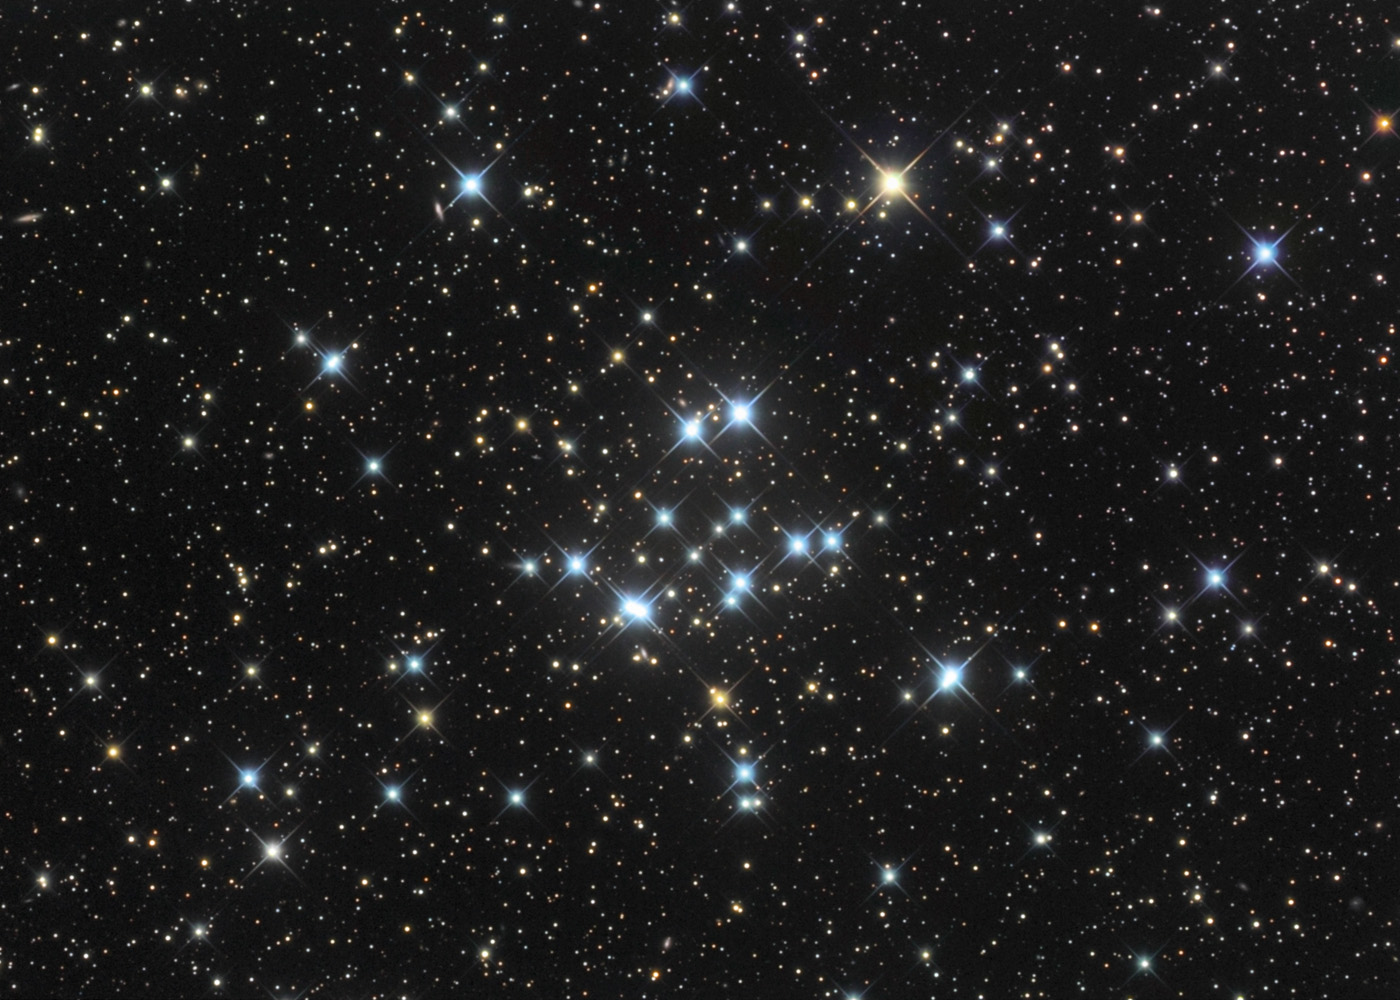 Apod 2010 february 11 star cluster m34 - Images night sky and stars ...